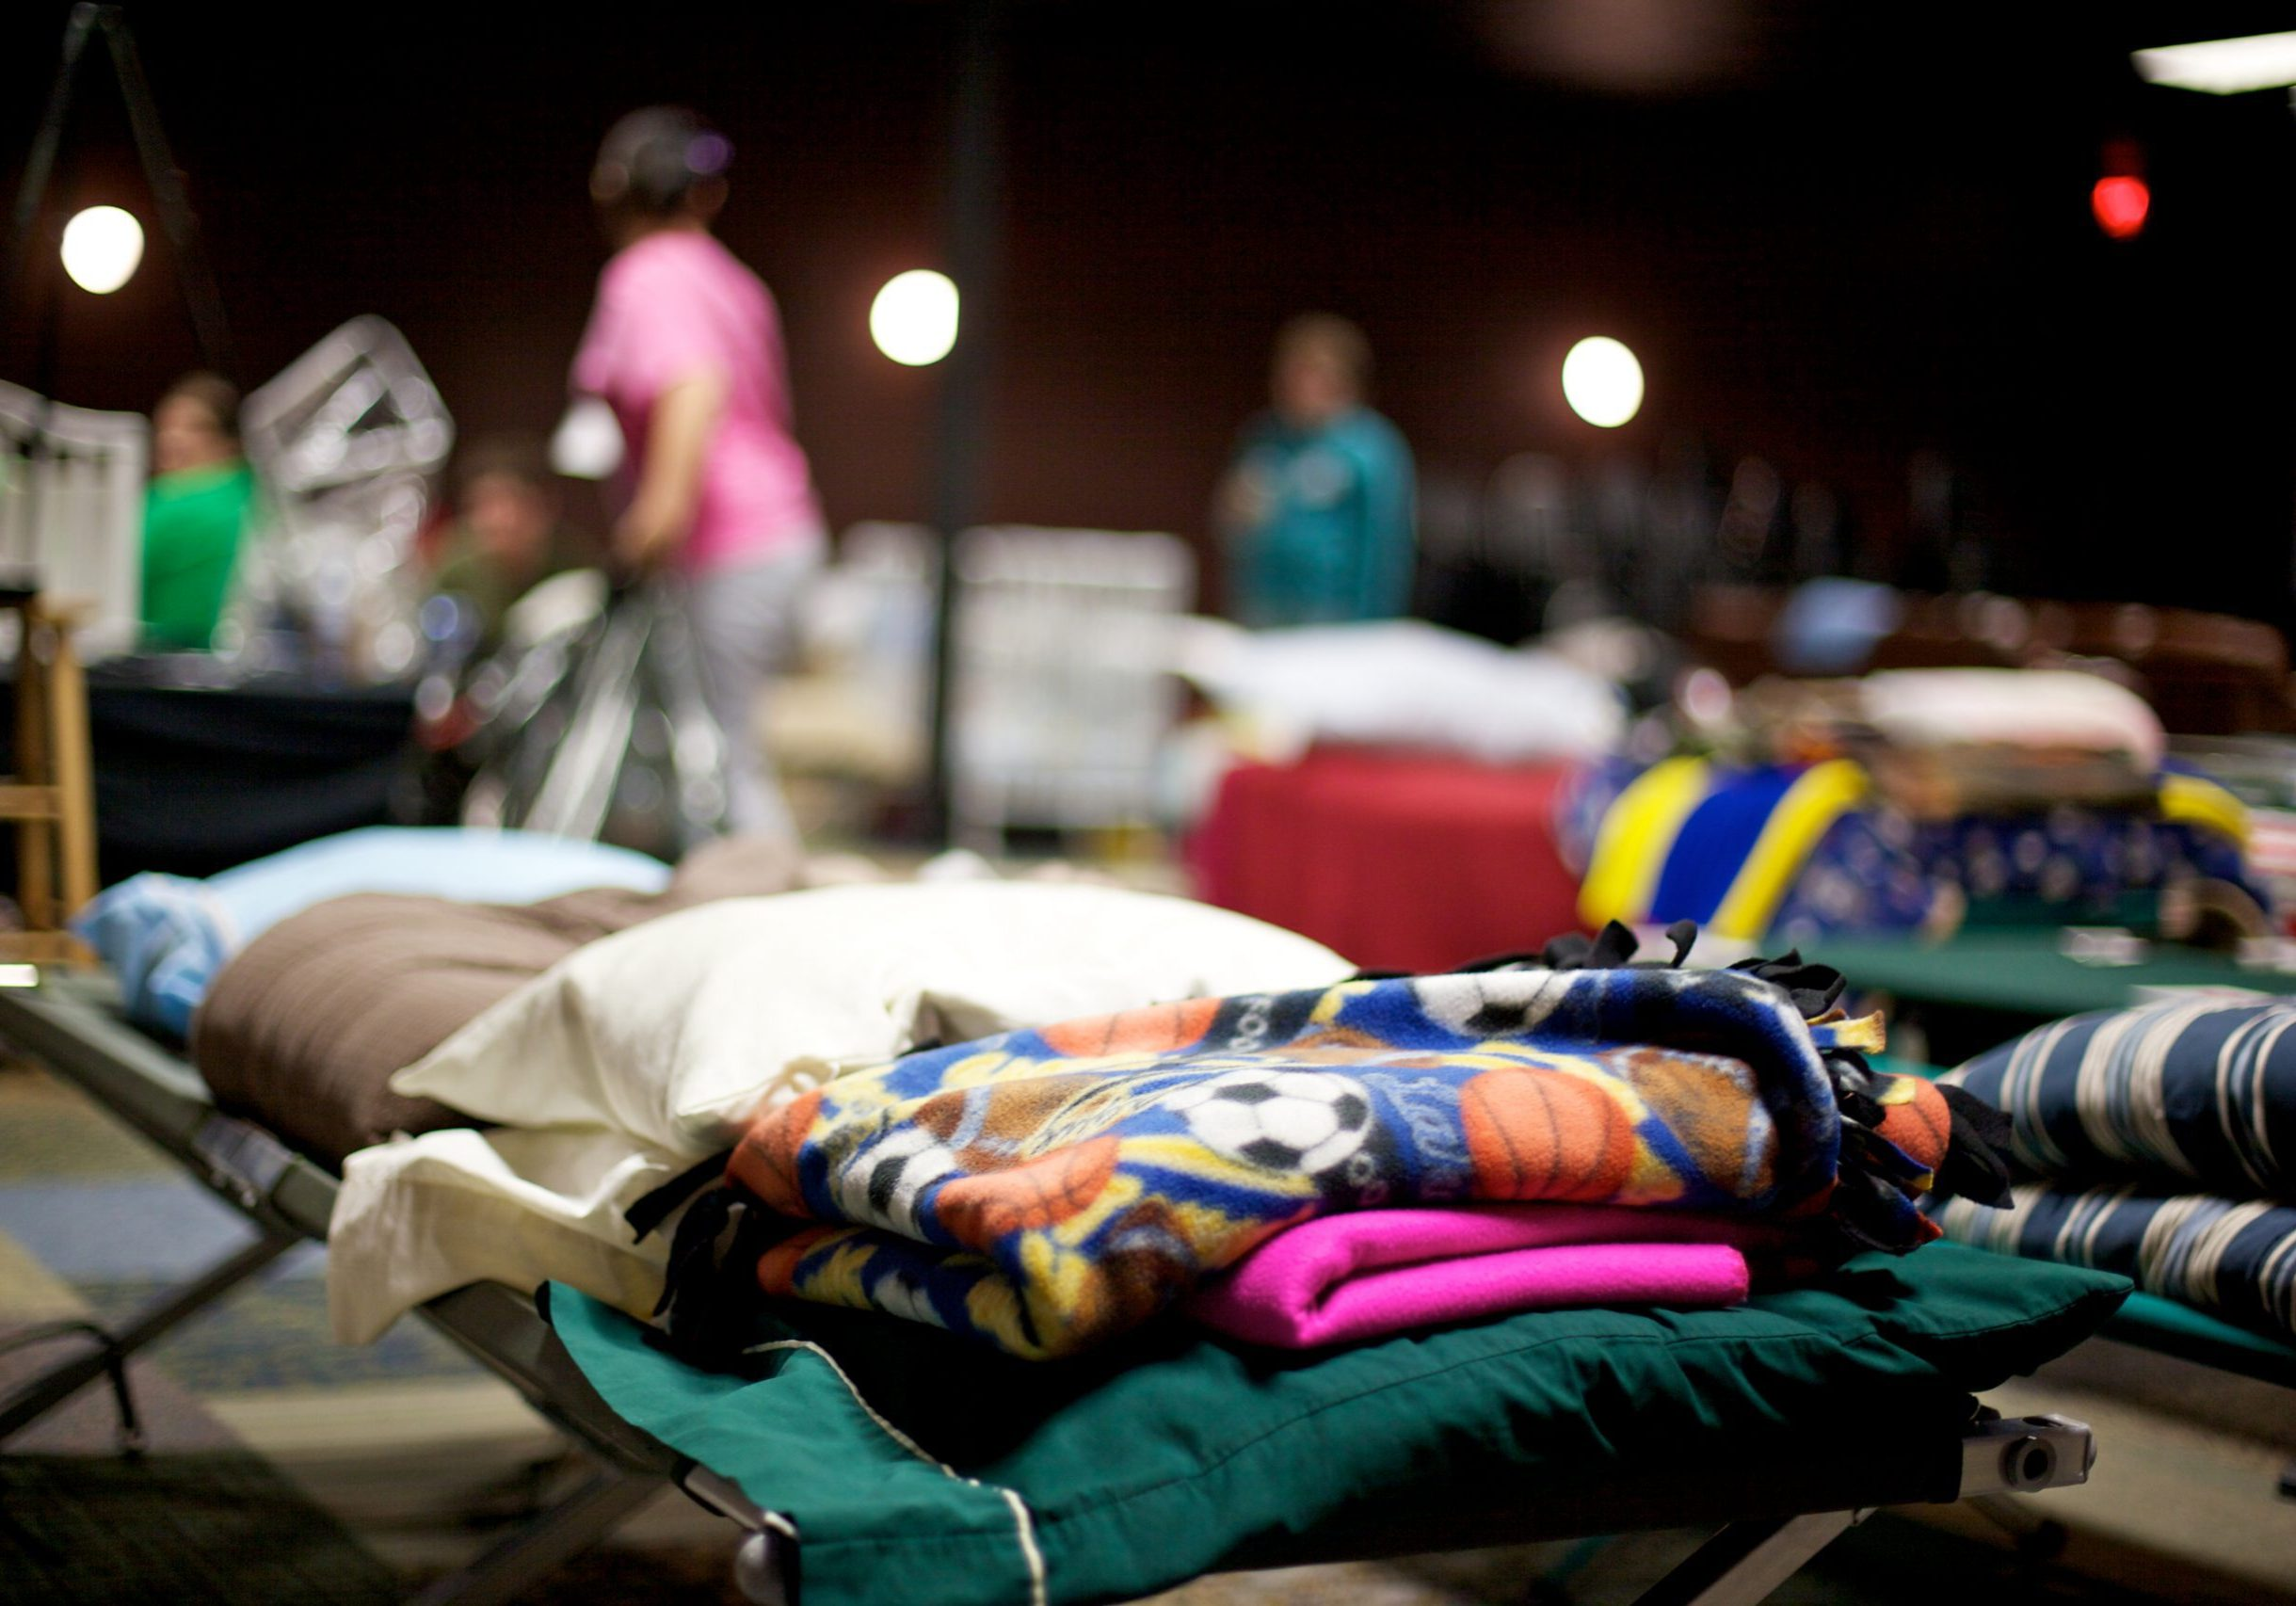 Joplin, United States - May 25, 2011: Public shelther cots where homeless residents stay only a few days following a destructive and deadly F5 tornado May 22, 2011